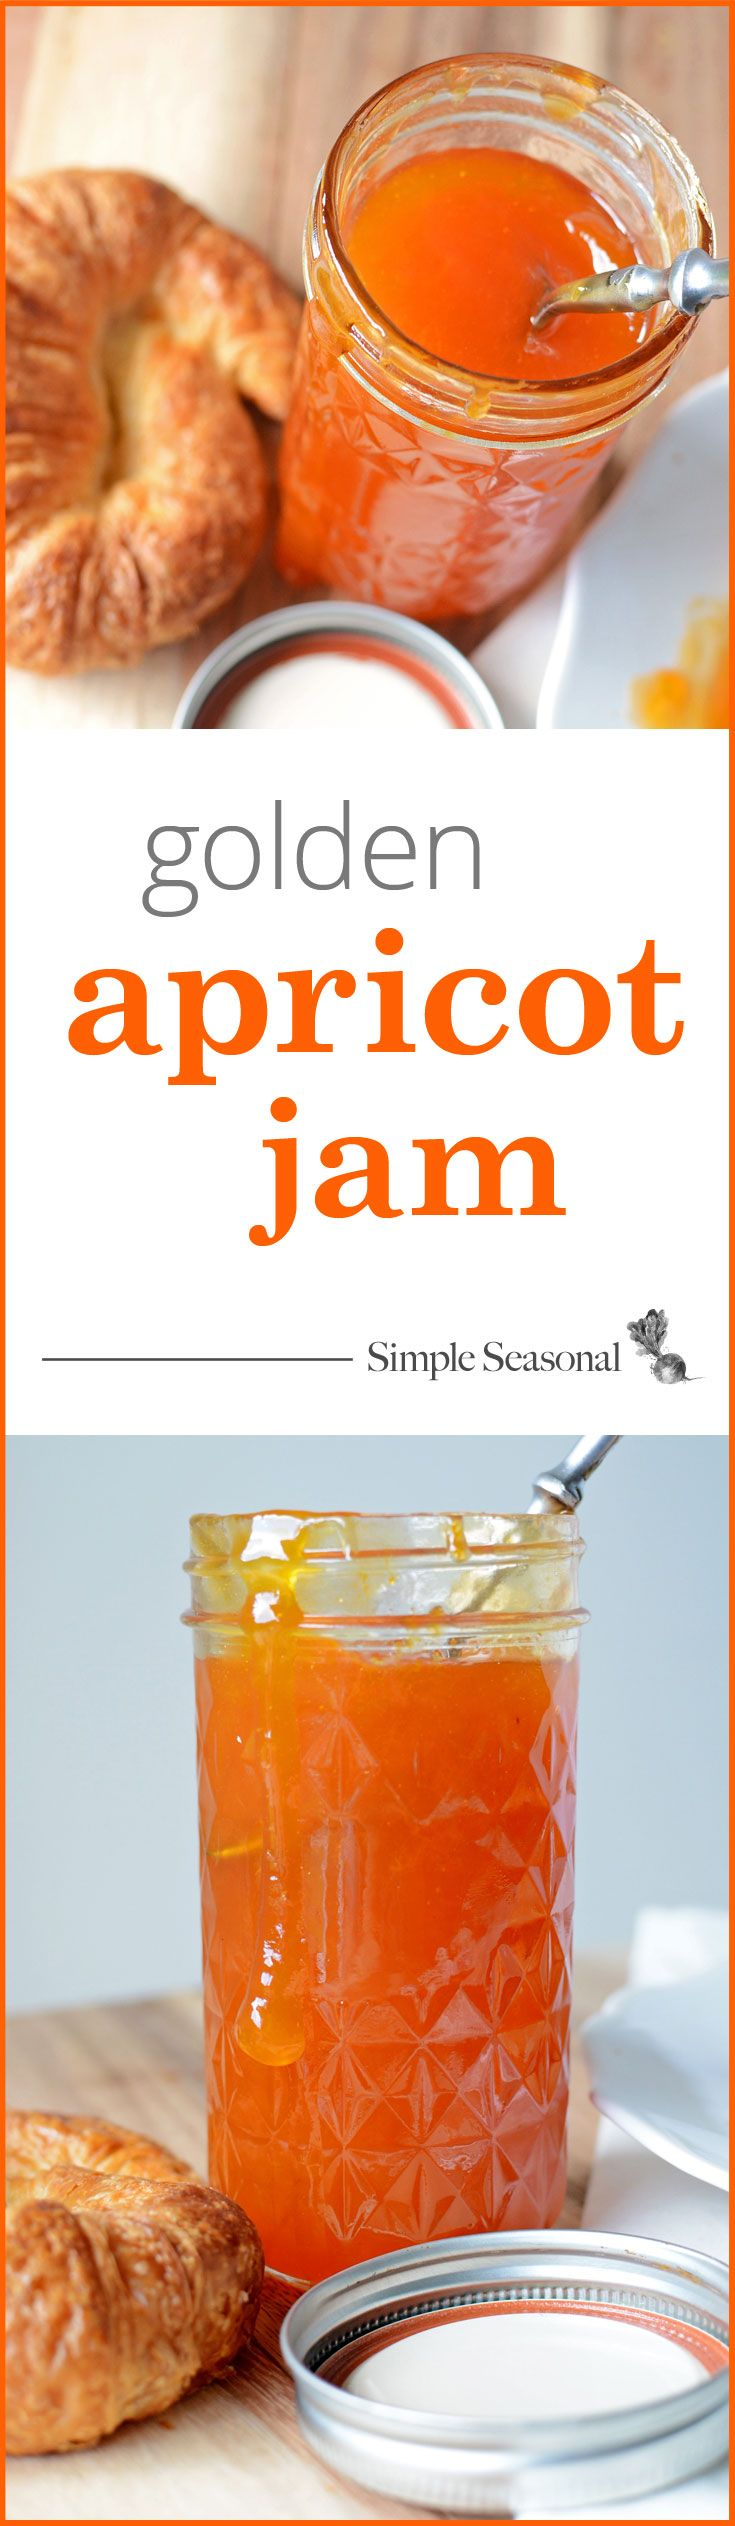 Golden Apricot Jam - a complete canning recipe for making jam with fresh apricots from your local orchard or farmers market. This sweet, sticky jam will be a welcome treat on a cold winter day when you're dreaming for the warmth of spring! Click through to see complete canning instructions, tips, and photos at SimpleSeasonal.com.